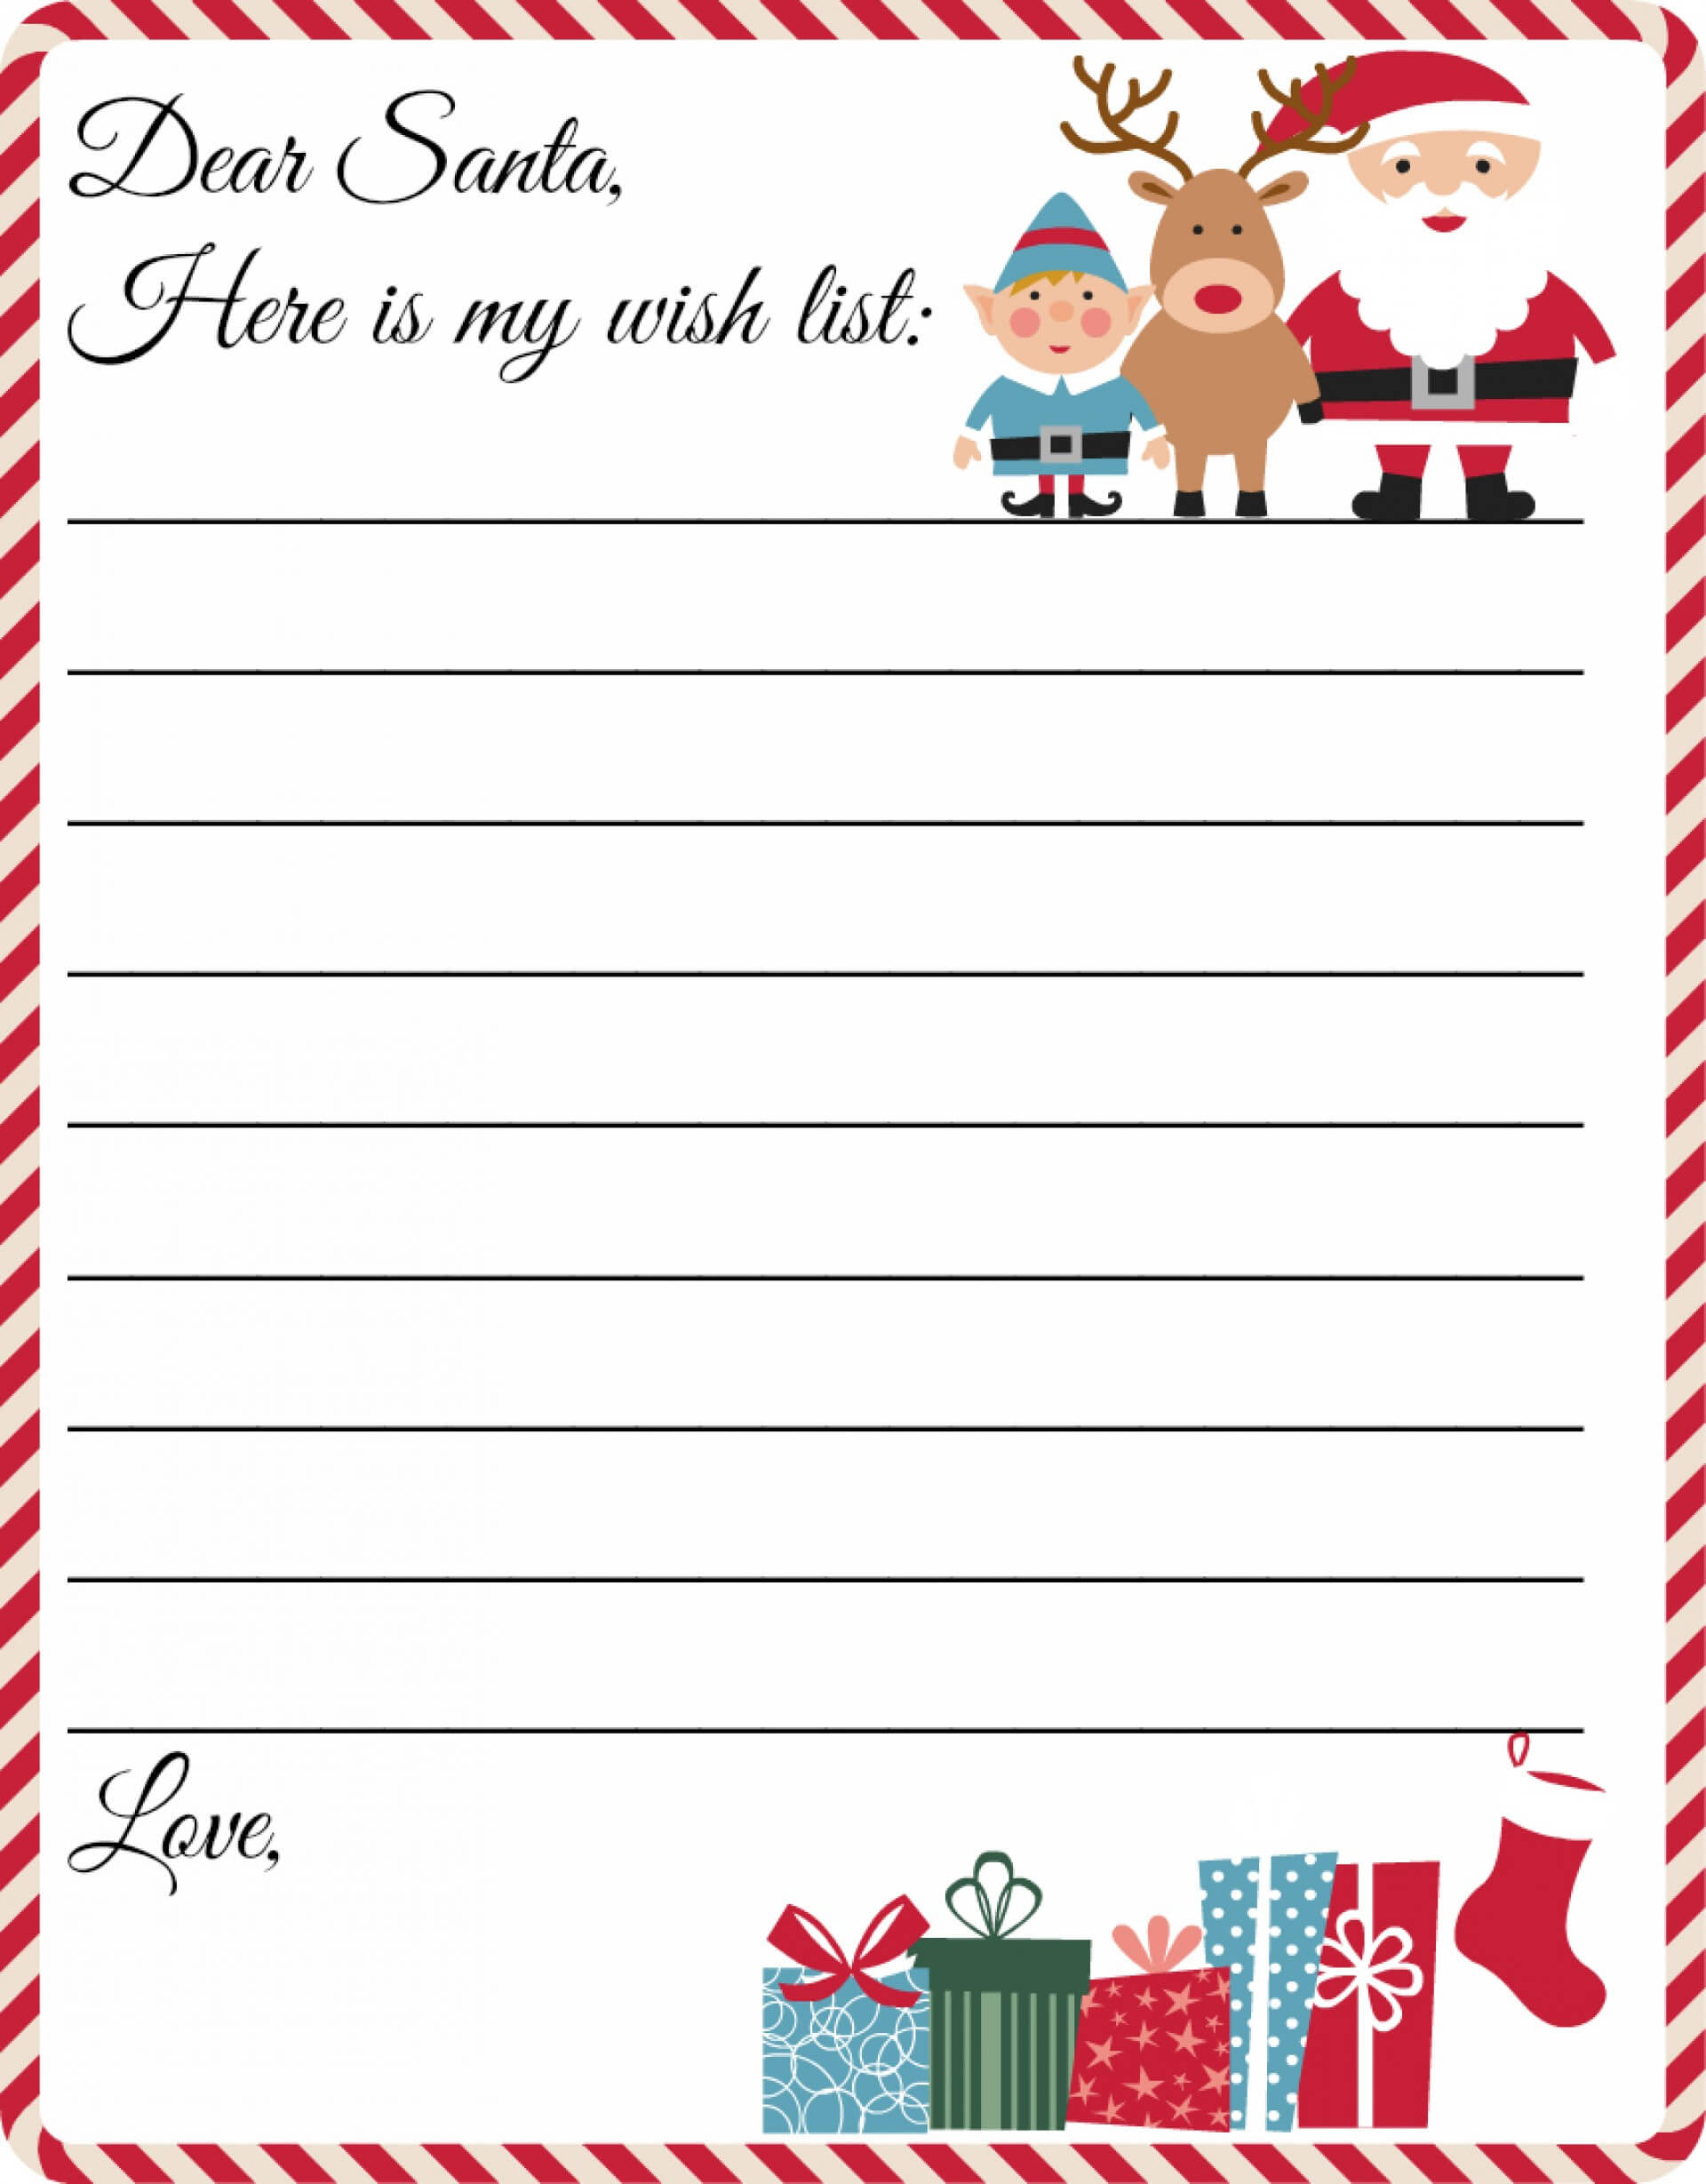 006 Template Ideas Ms Word Letter From Santa Letters To Throughout Letter From Santa Template Word